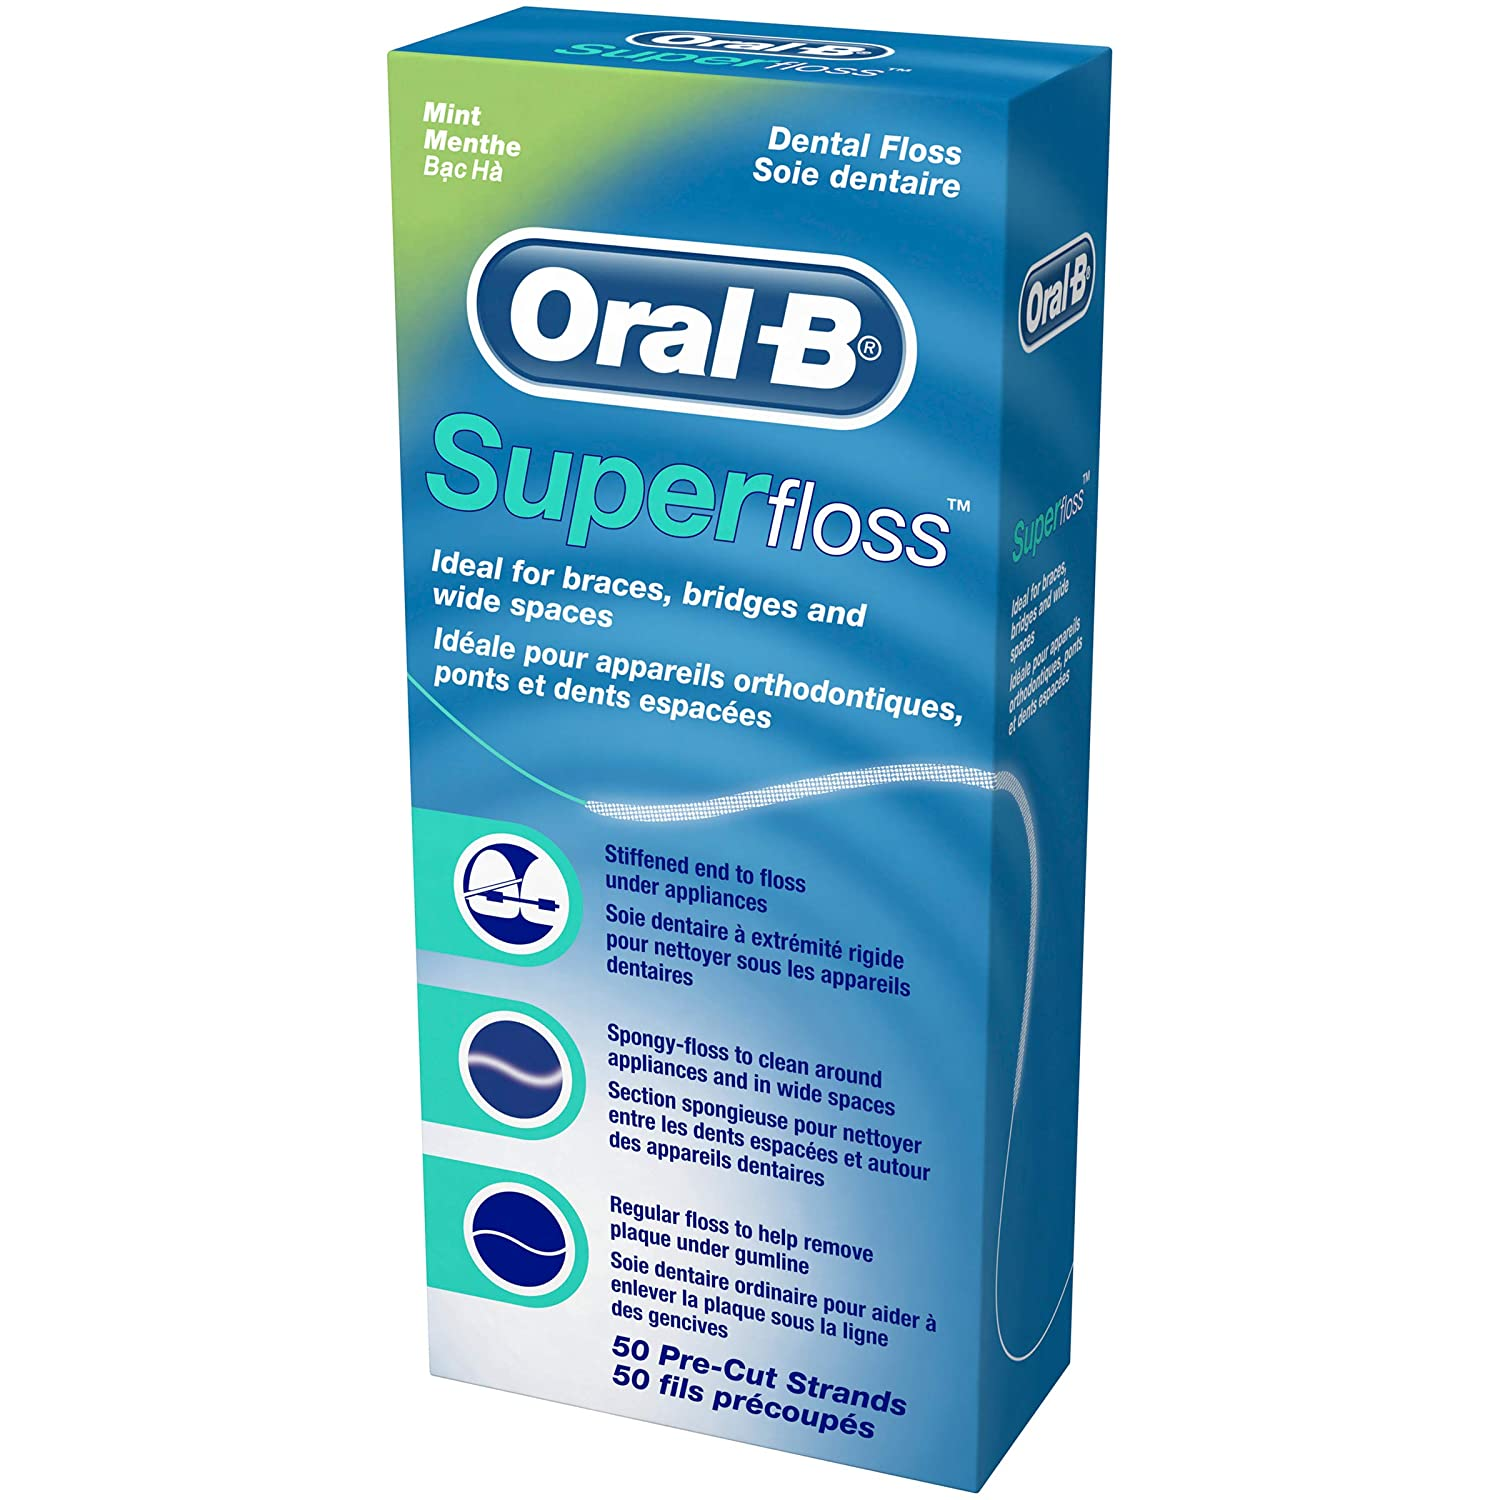 Oral-B Super Floss - 50 piezas precortadas de seda dental (12 unidades)